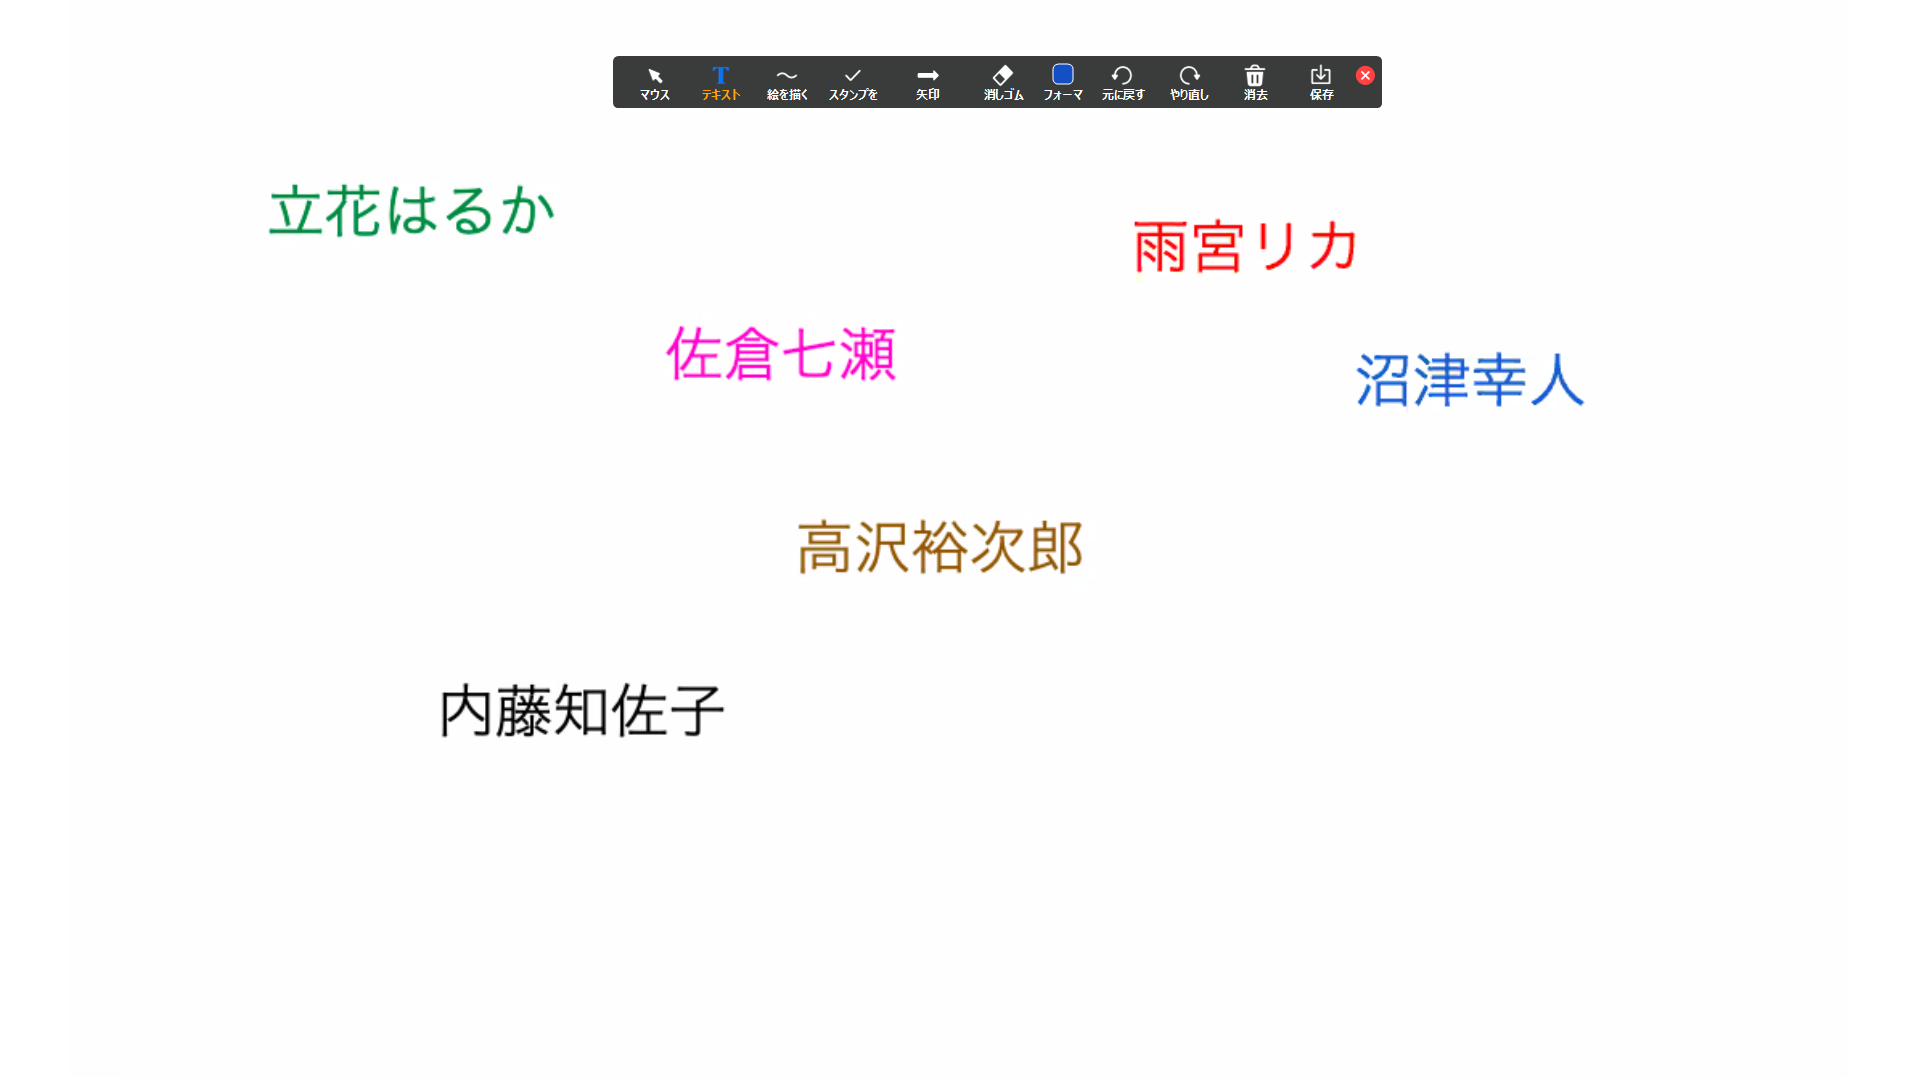 http://igs-kankan.com/article/59f79c31339c812d5188c124bba1928f0f6b777c.png